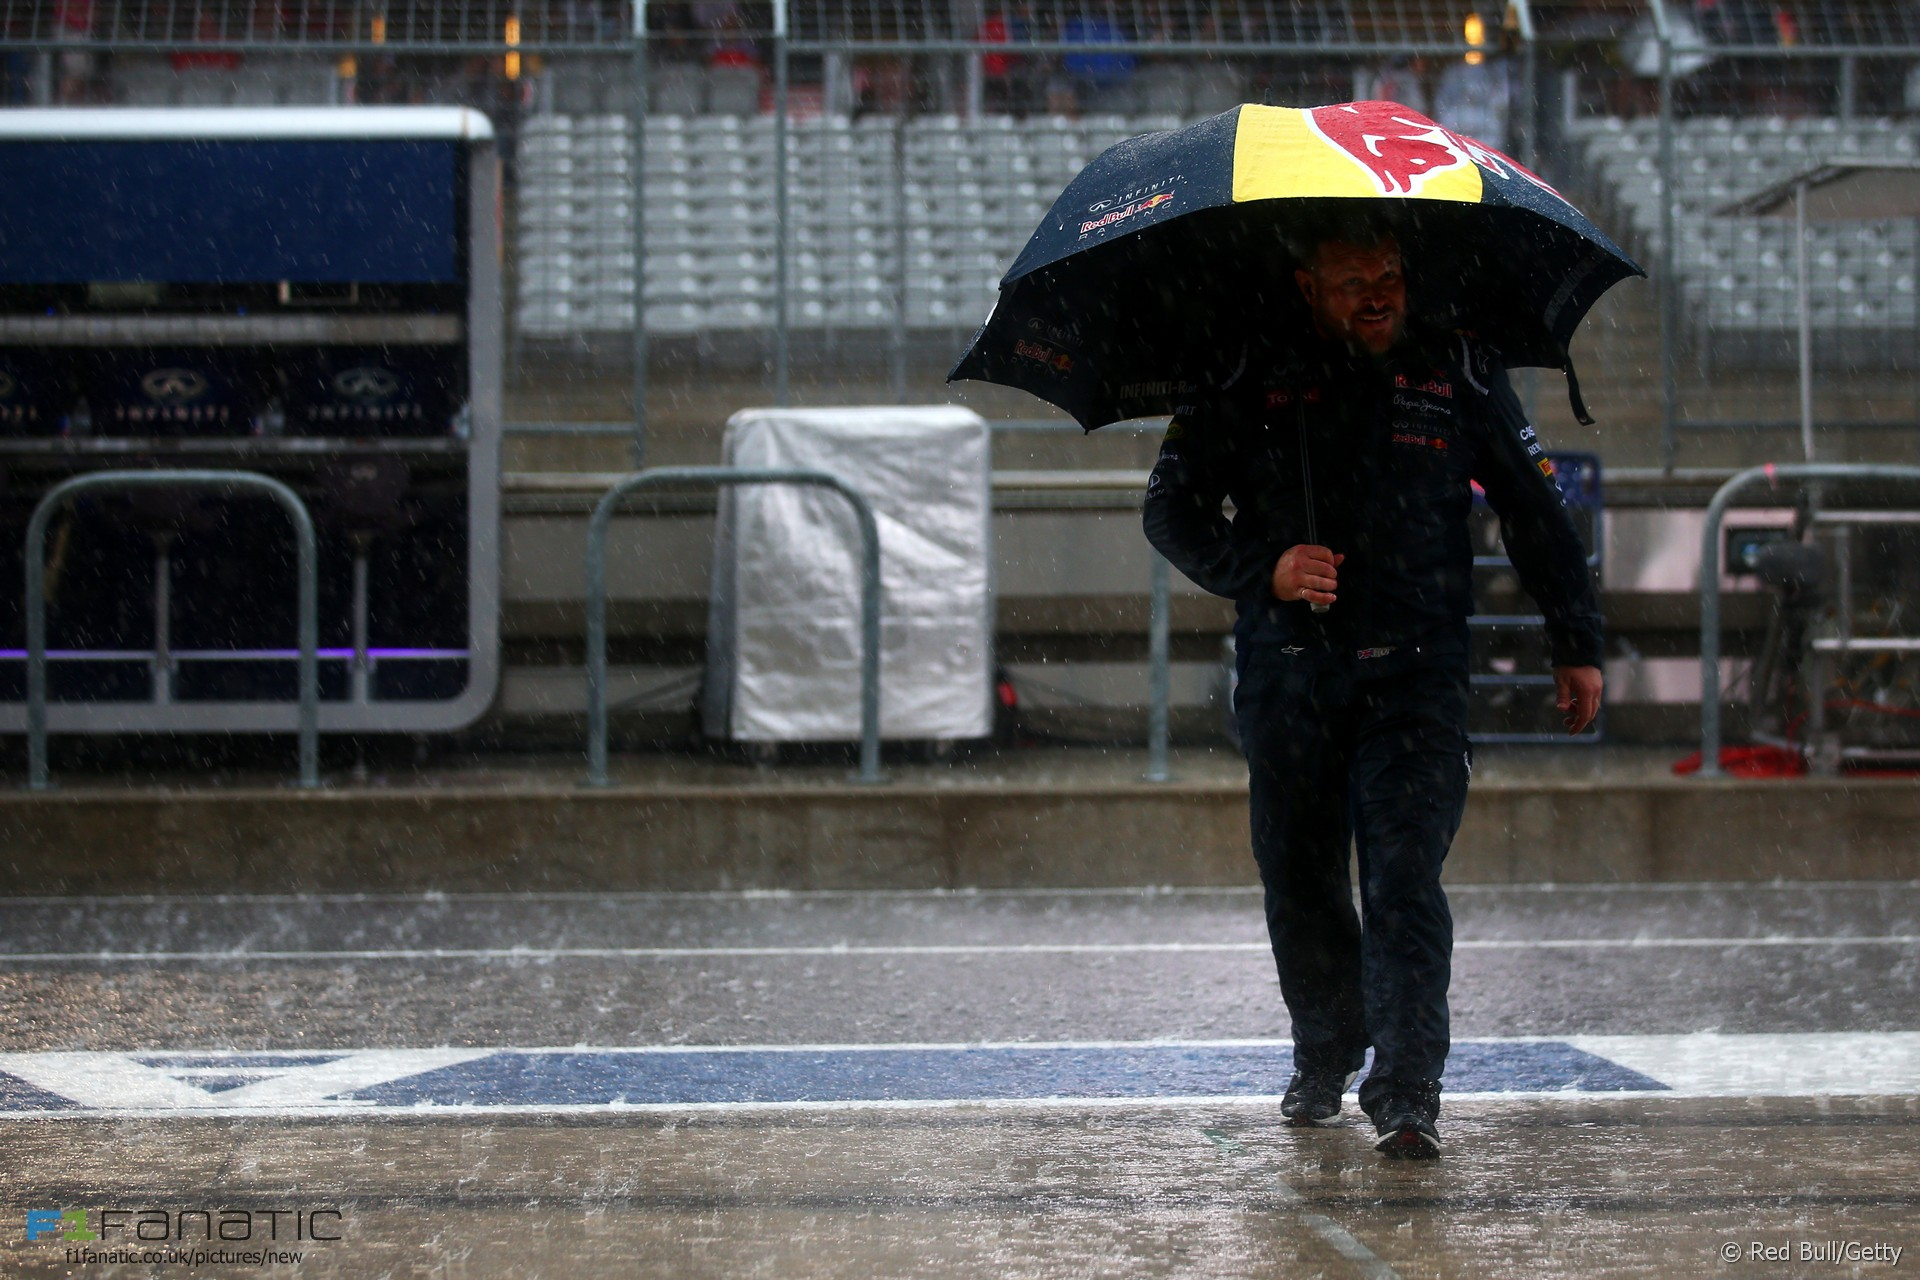 Red Bull, Circuit of the Americas, 2015